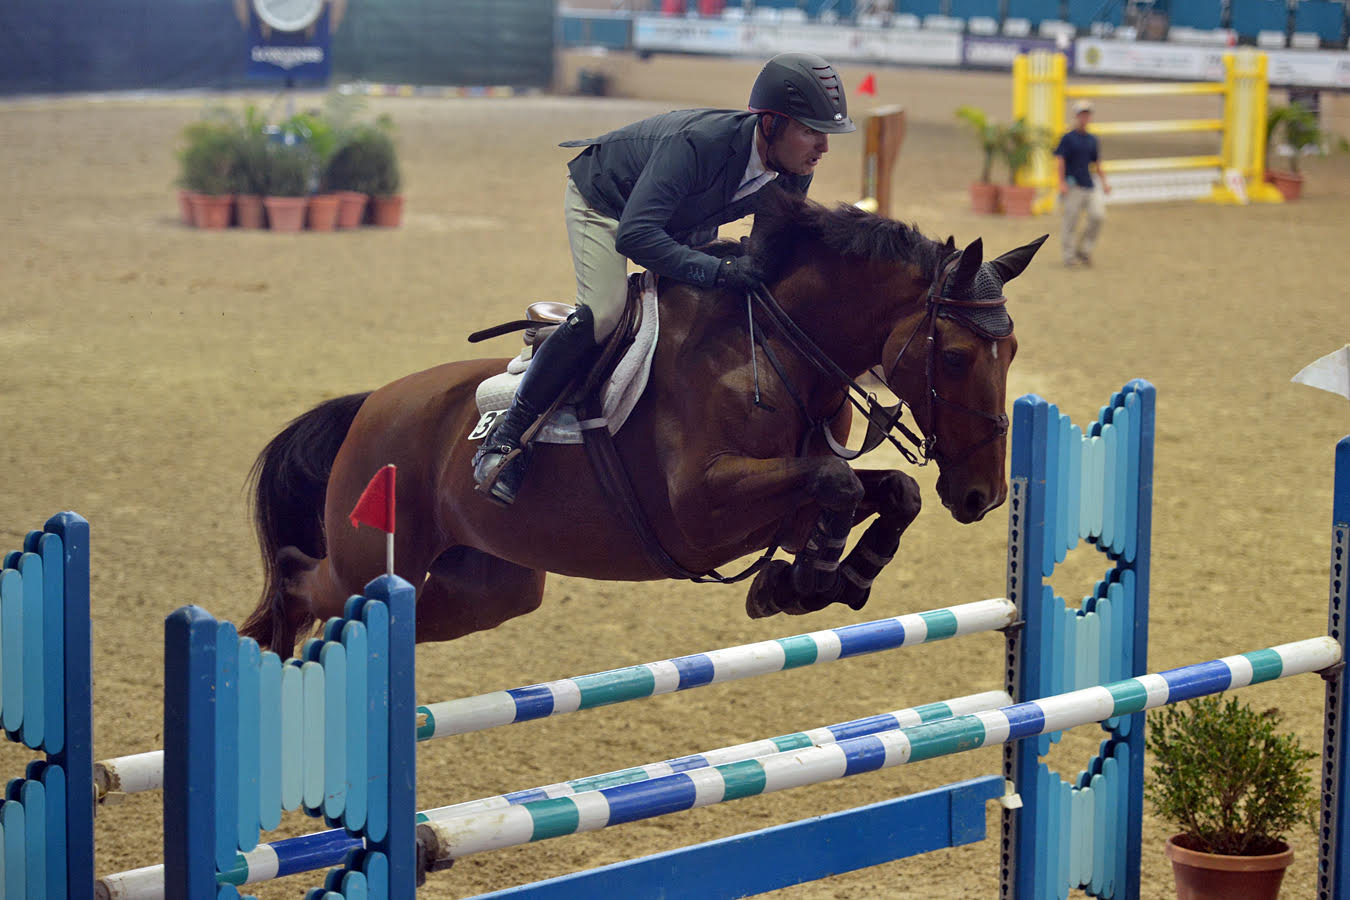 wyndmont-riders-produce-consistent-results-in-california.jpg